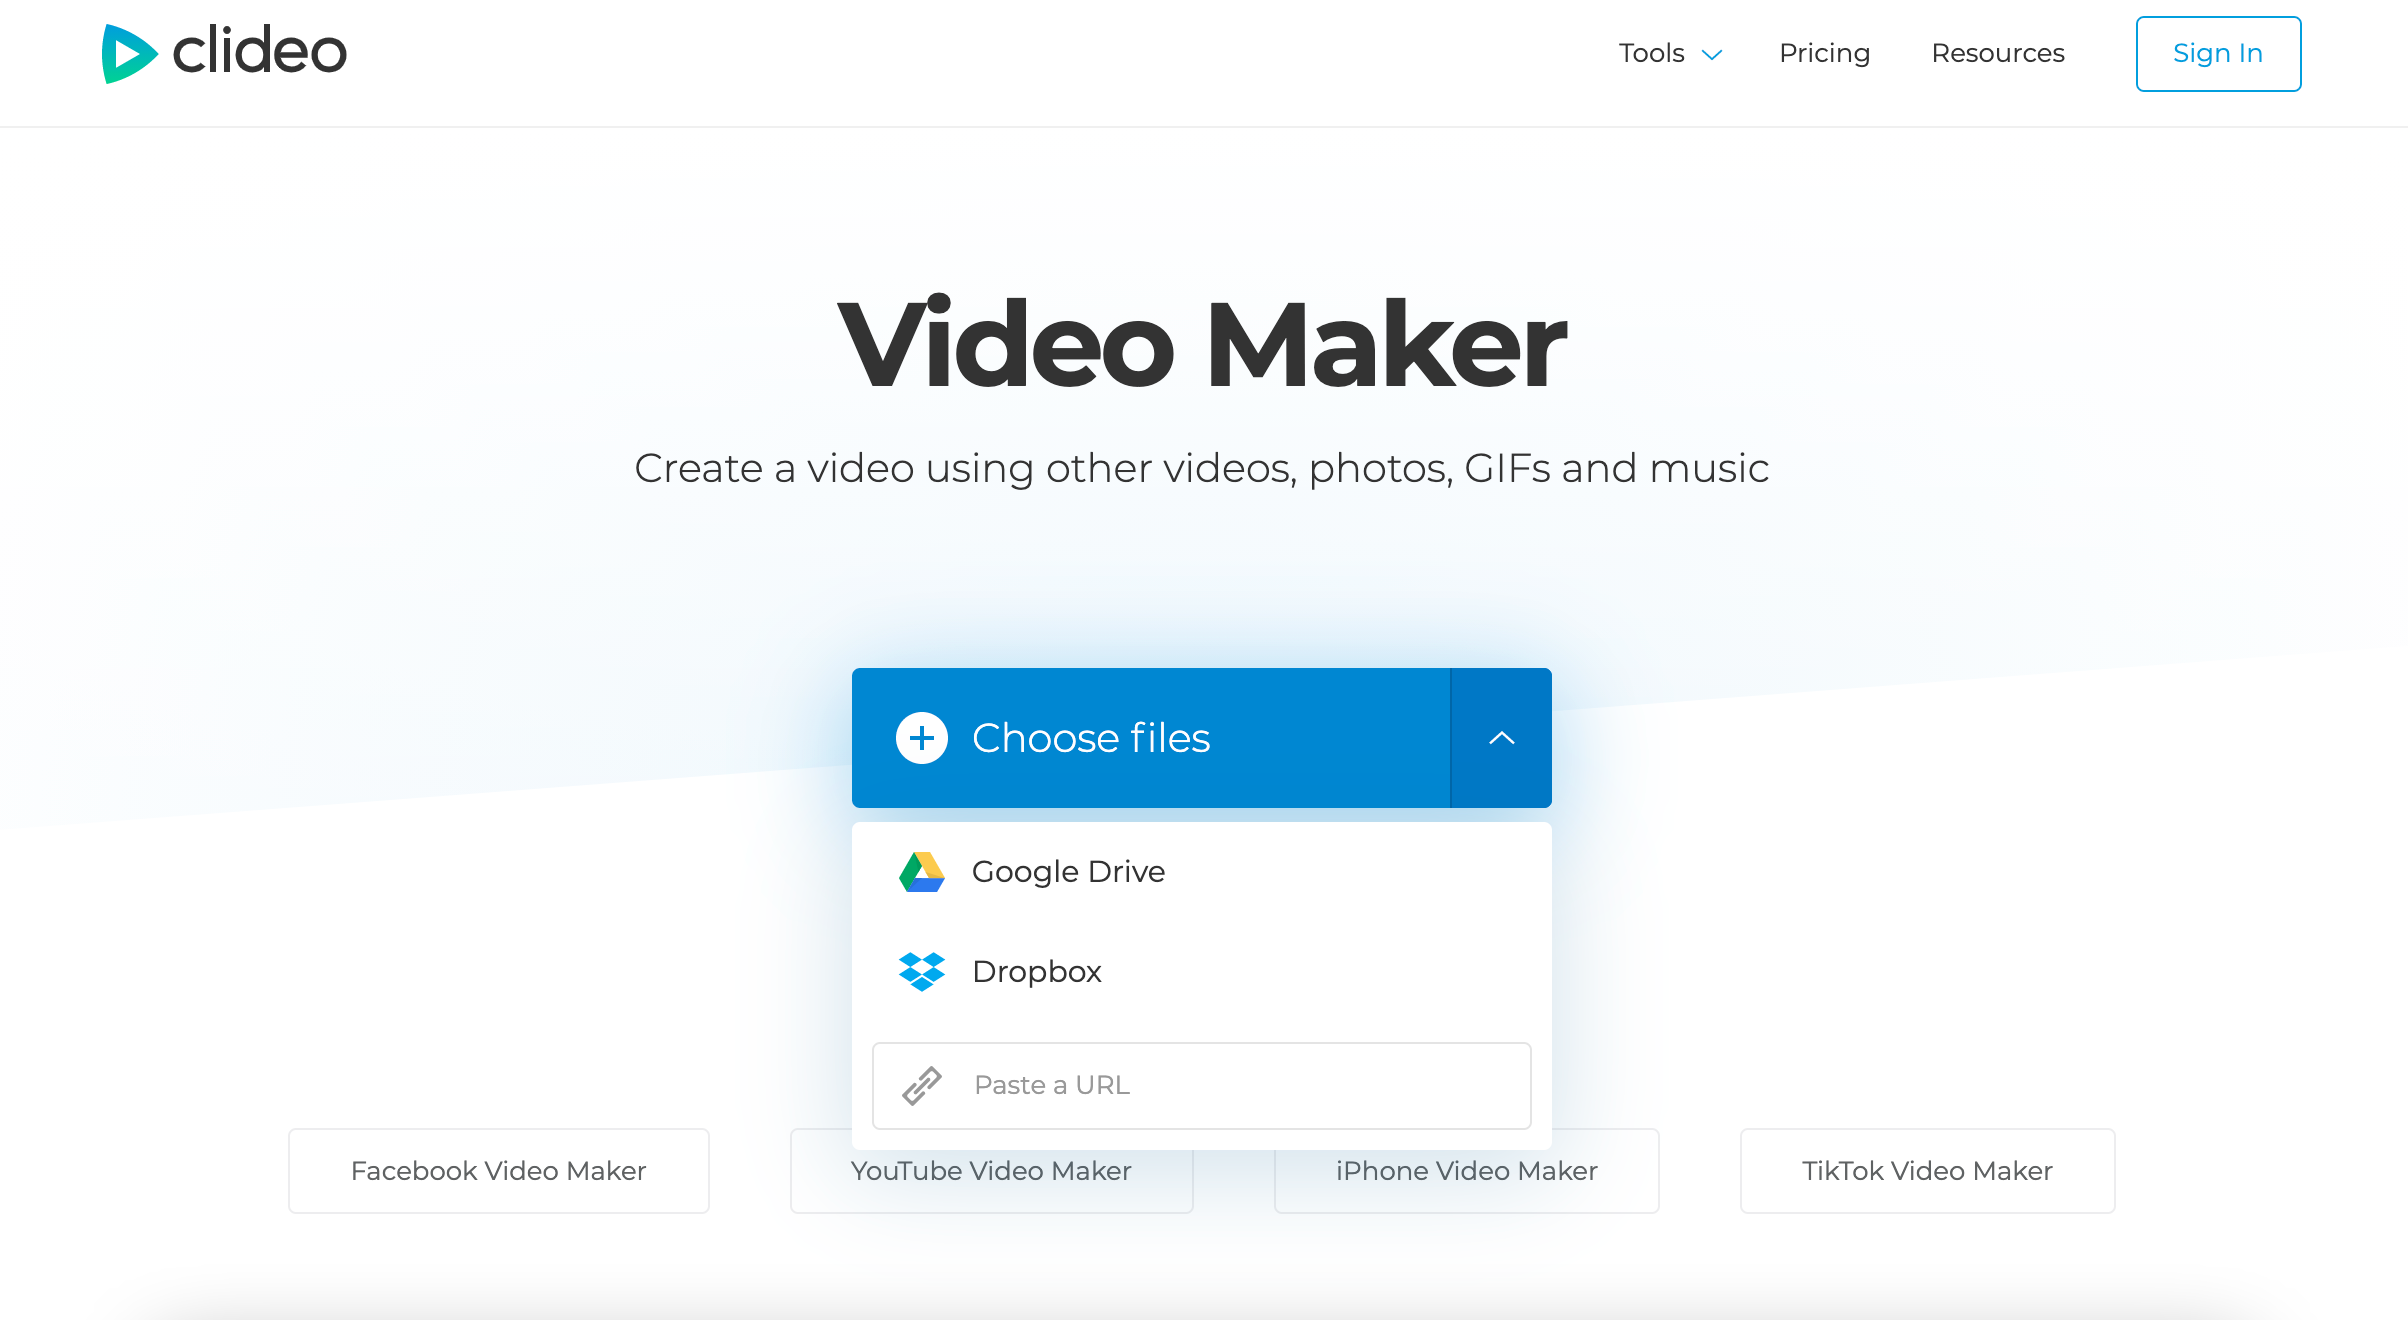 Upload images to create video